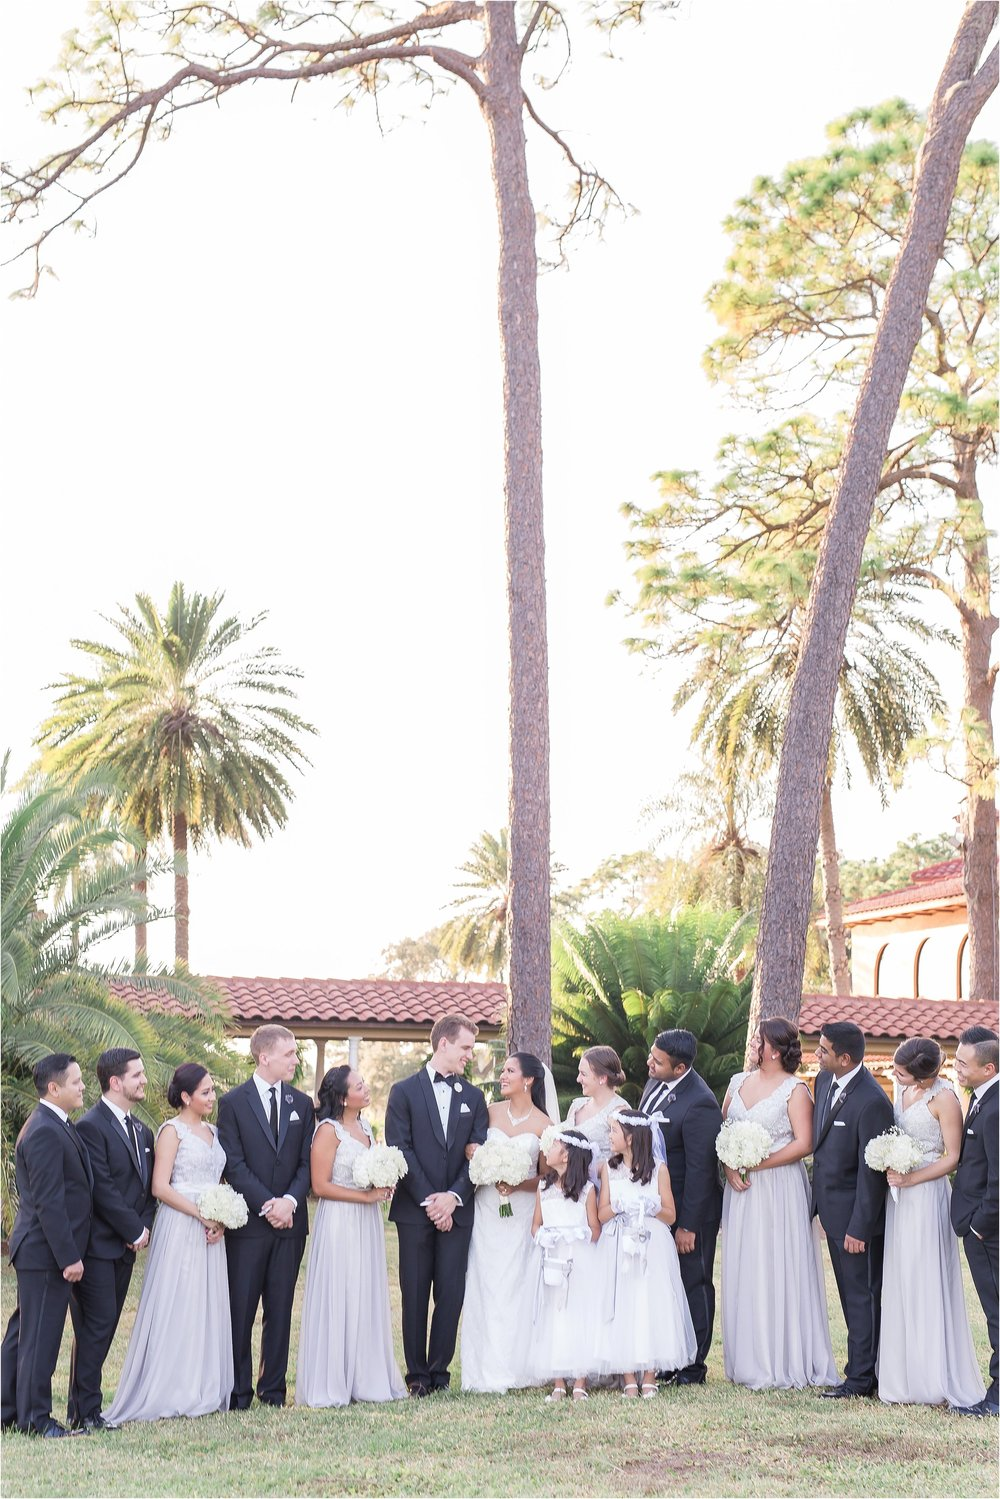 Tuxes and Light Grey Bridal Party at Mission Inn Wedding